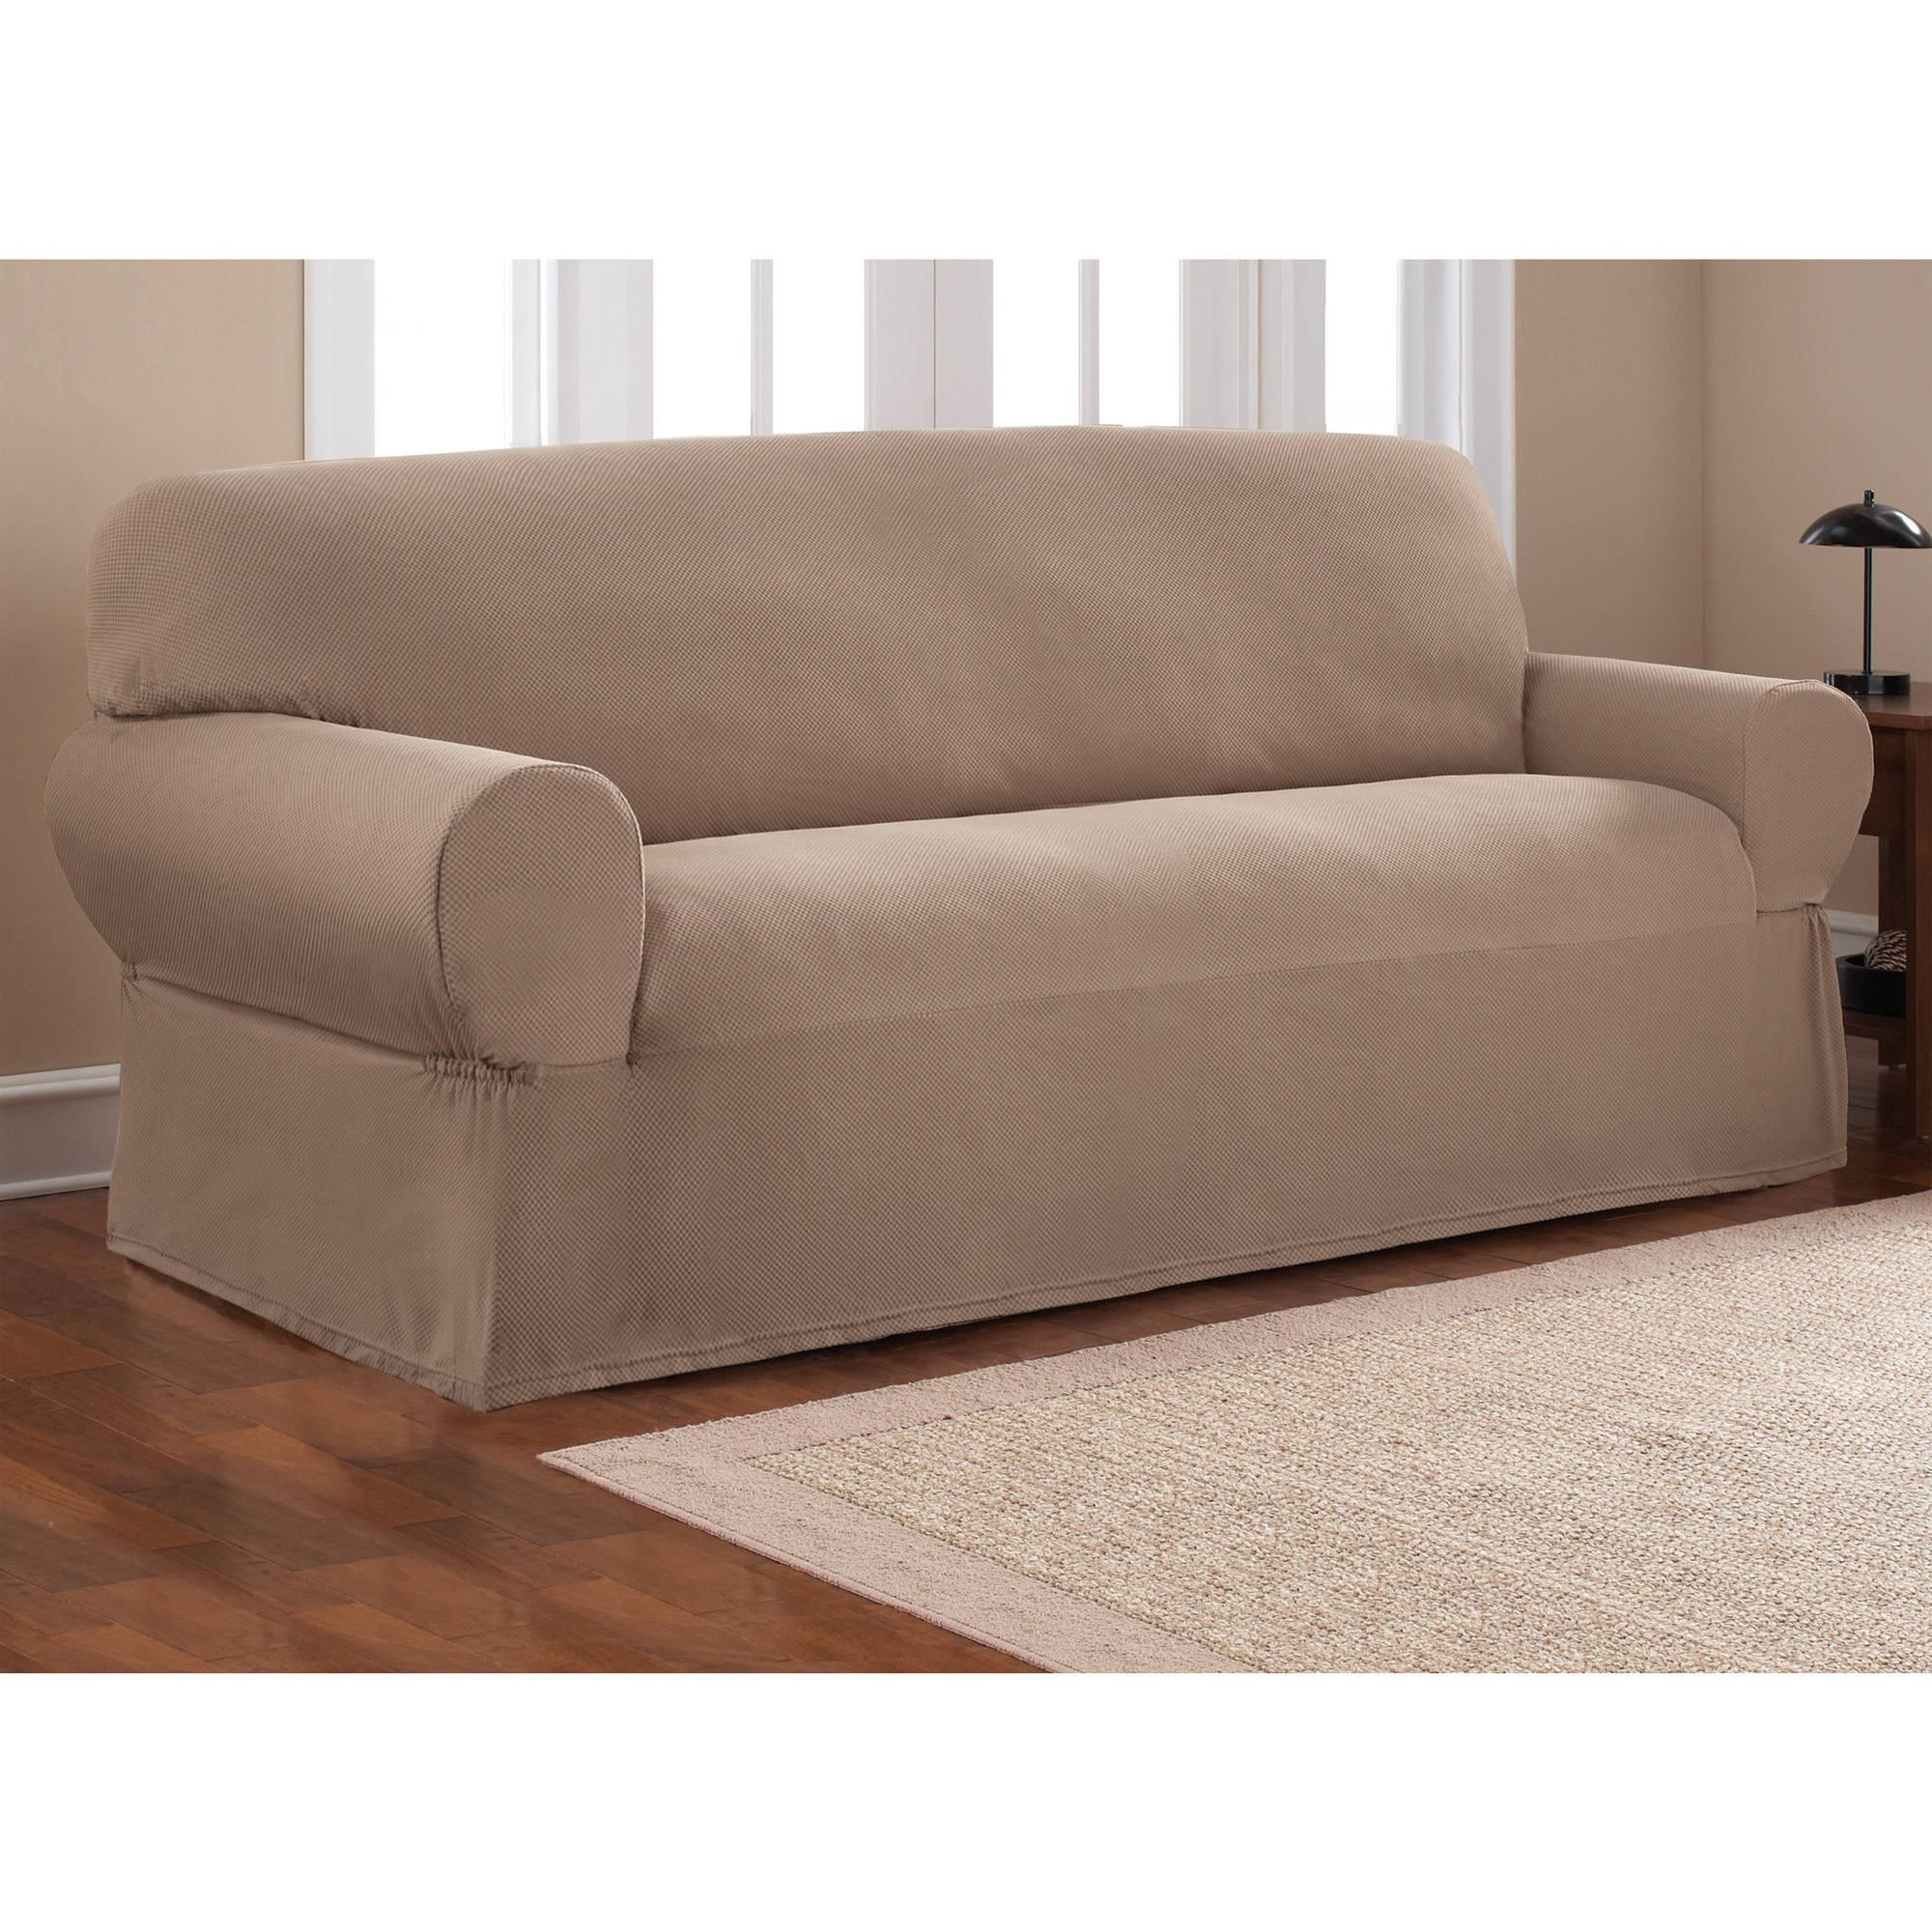 Mainstays 1 Piece Stretch Fabric Sofa Slipcover – Walmart Pertaining To Suede Slipcovers For Sofas (View 2 of 20)